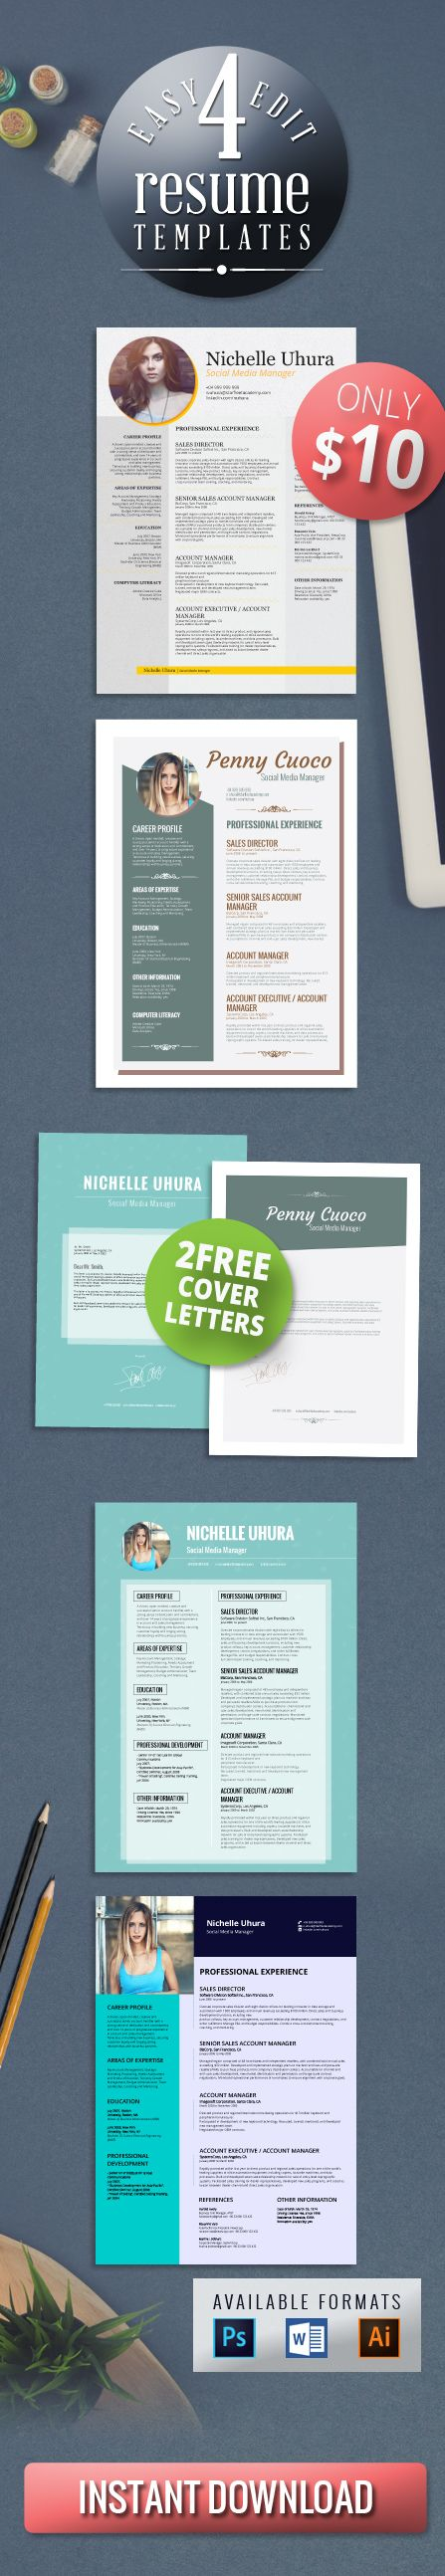 25 unique resume photo ideas on pinterest portfolio design